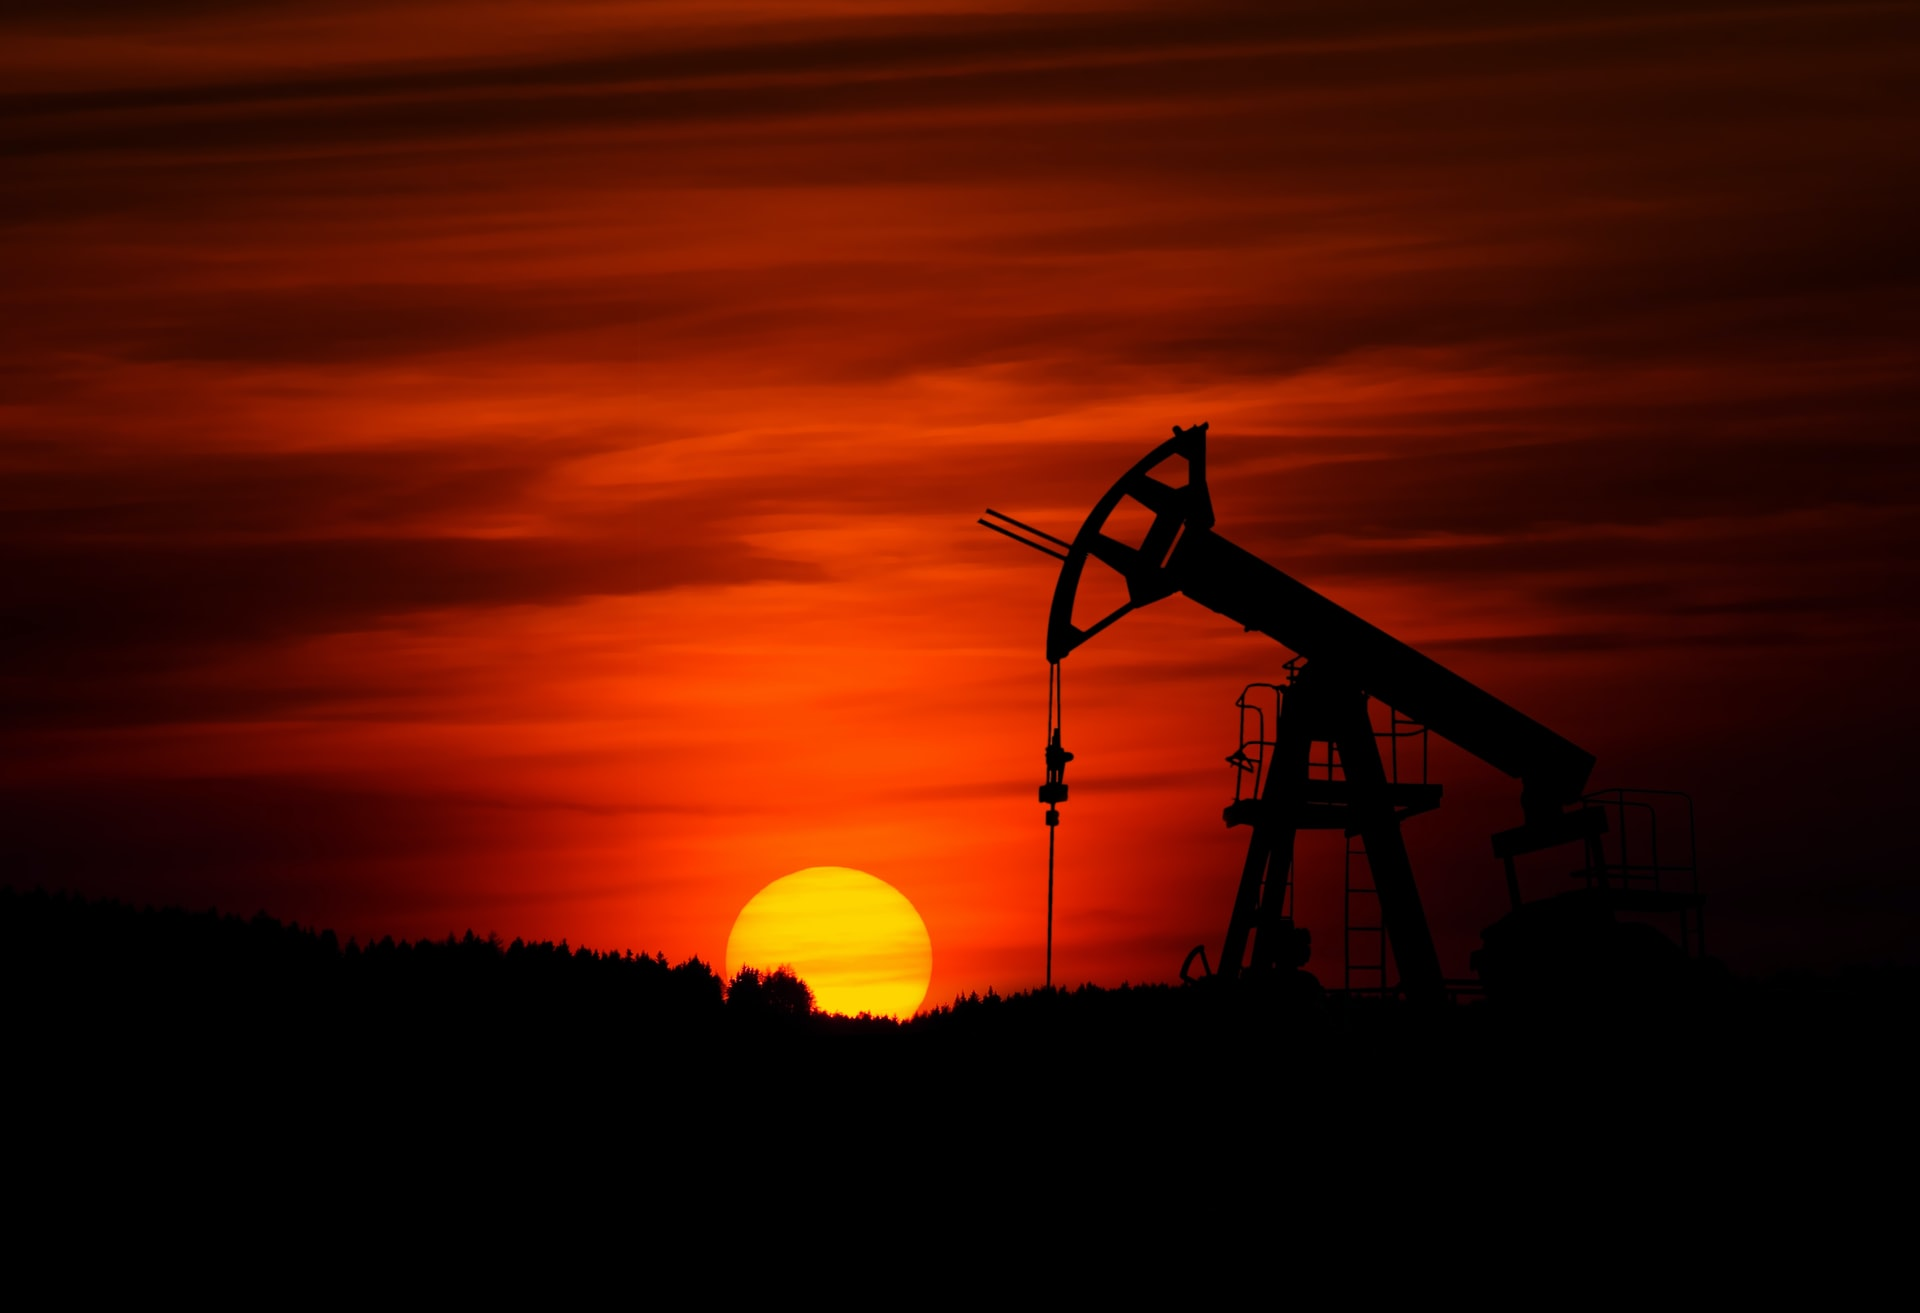 🛢 Hedge funds believe in the future of oil?